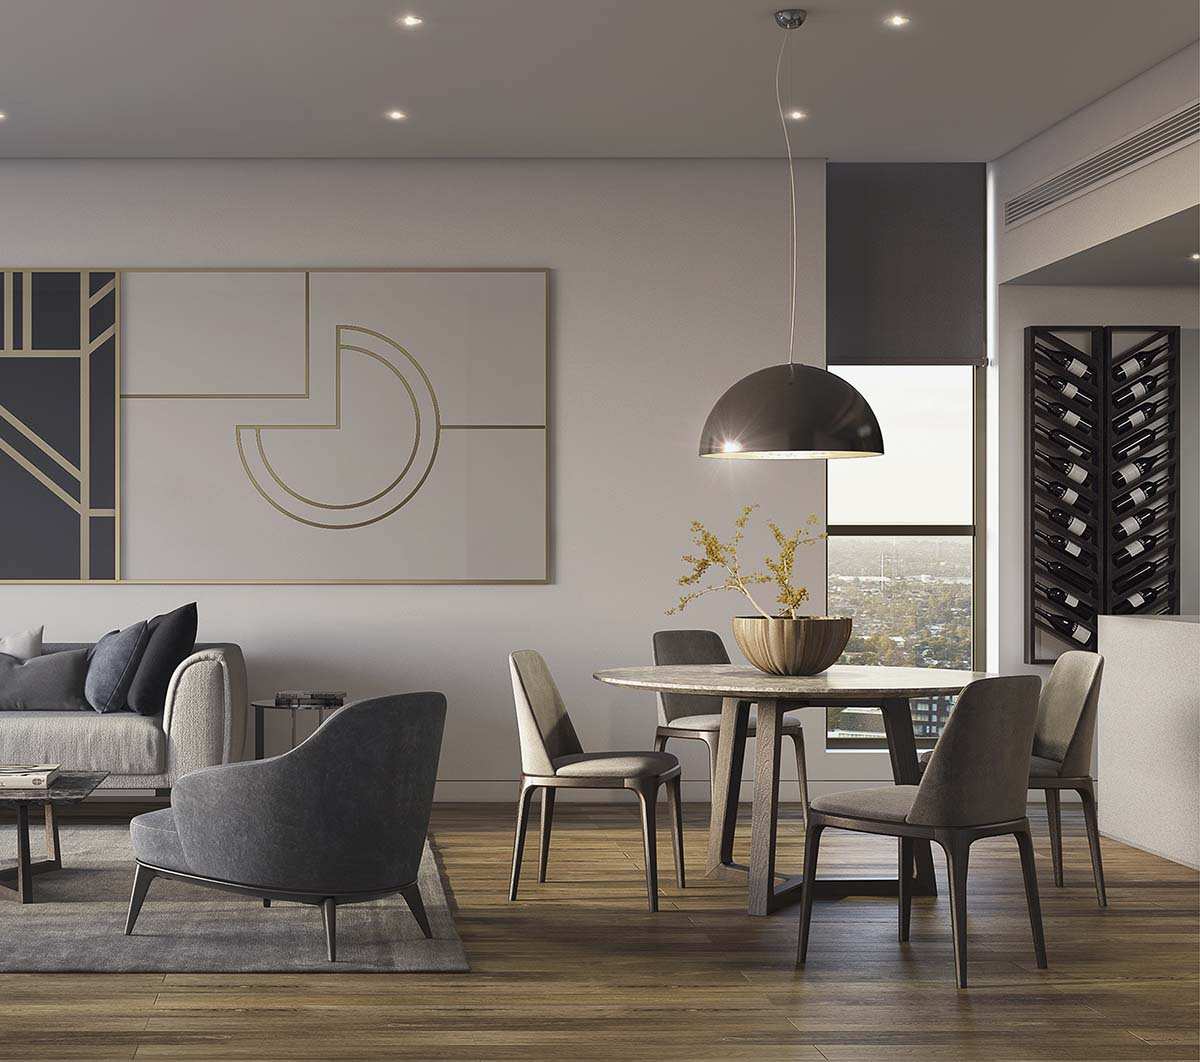 kitchen and living area in city apartment